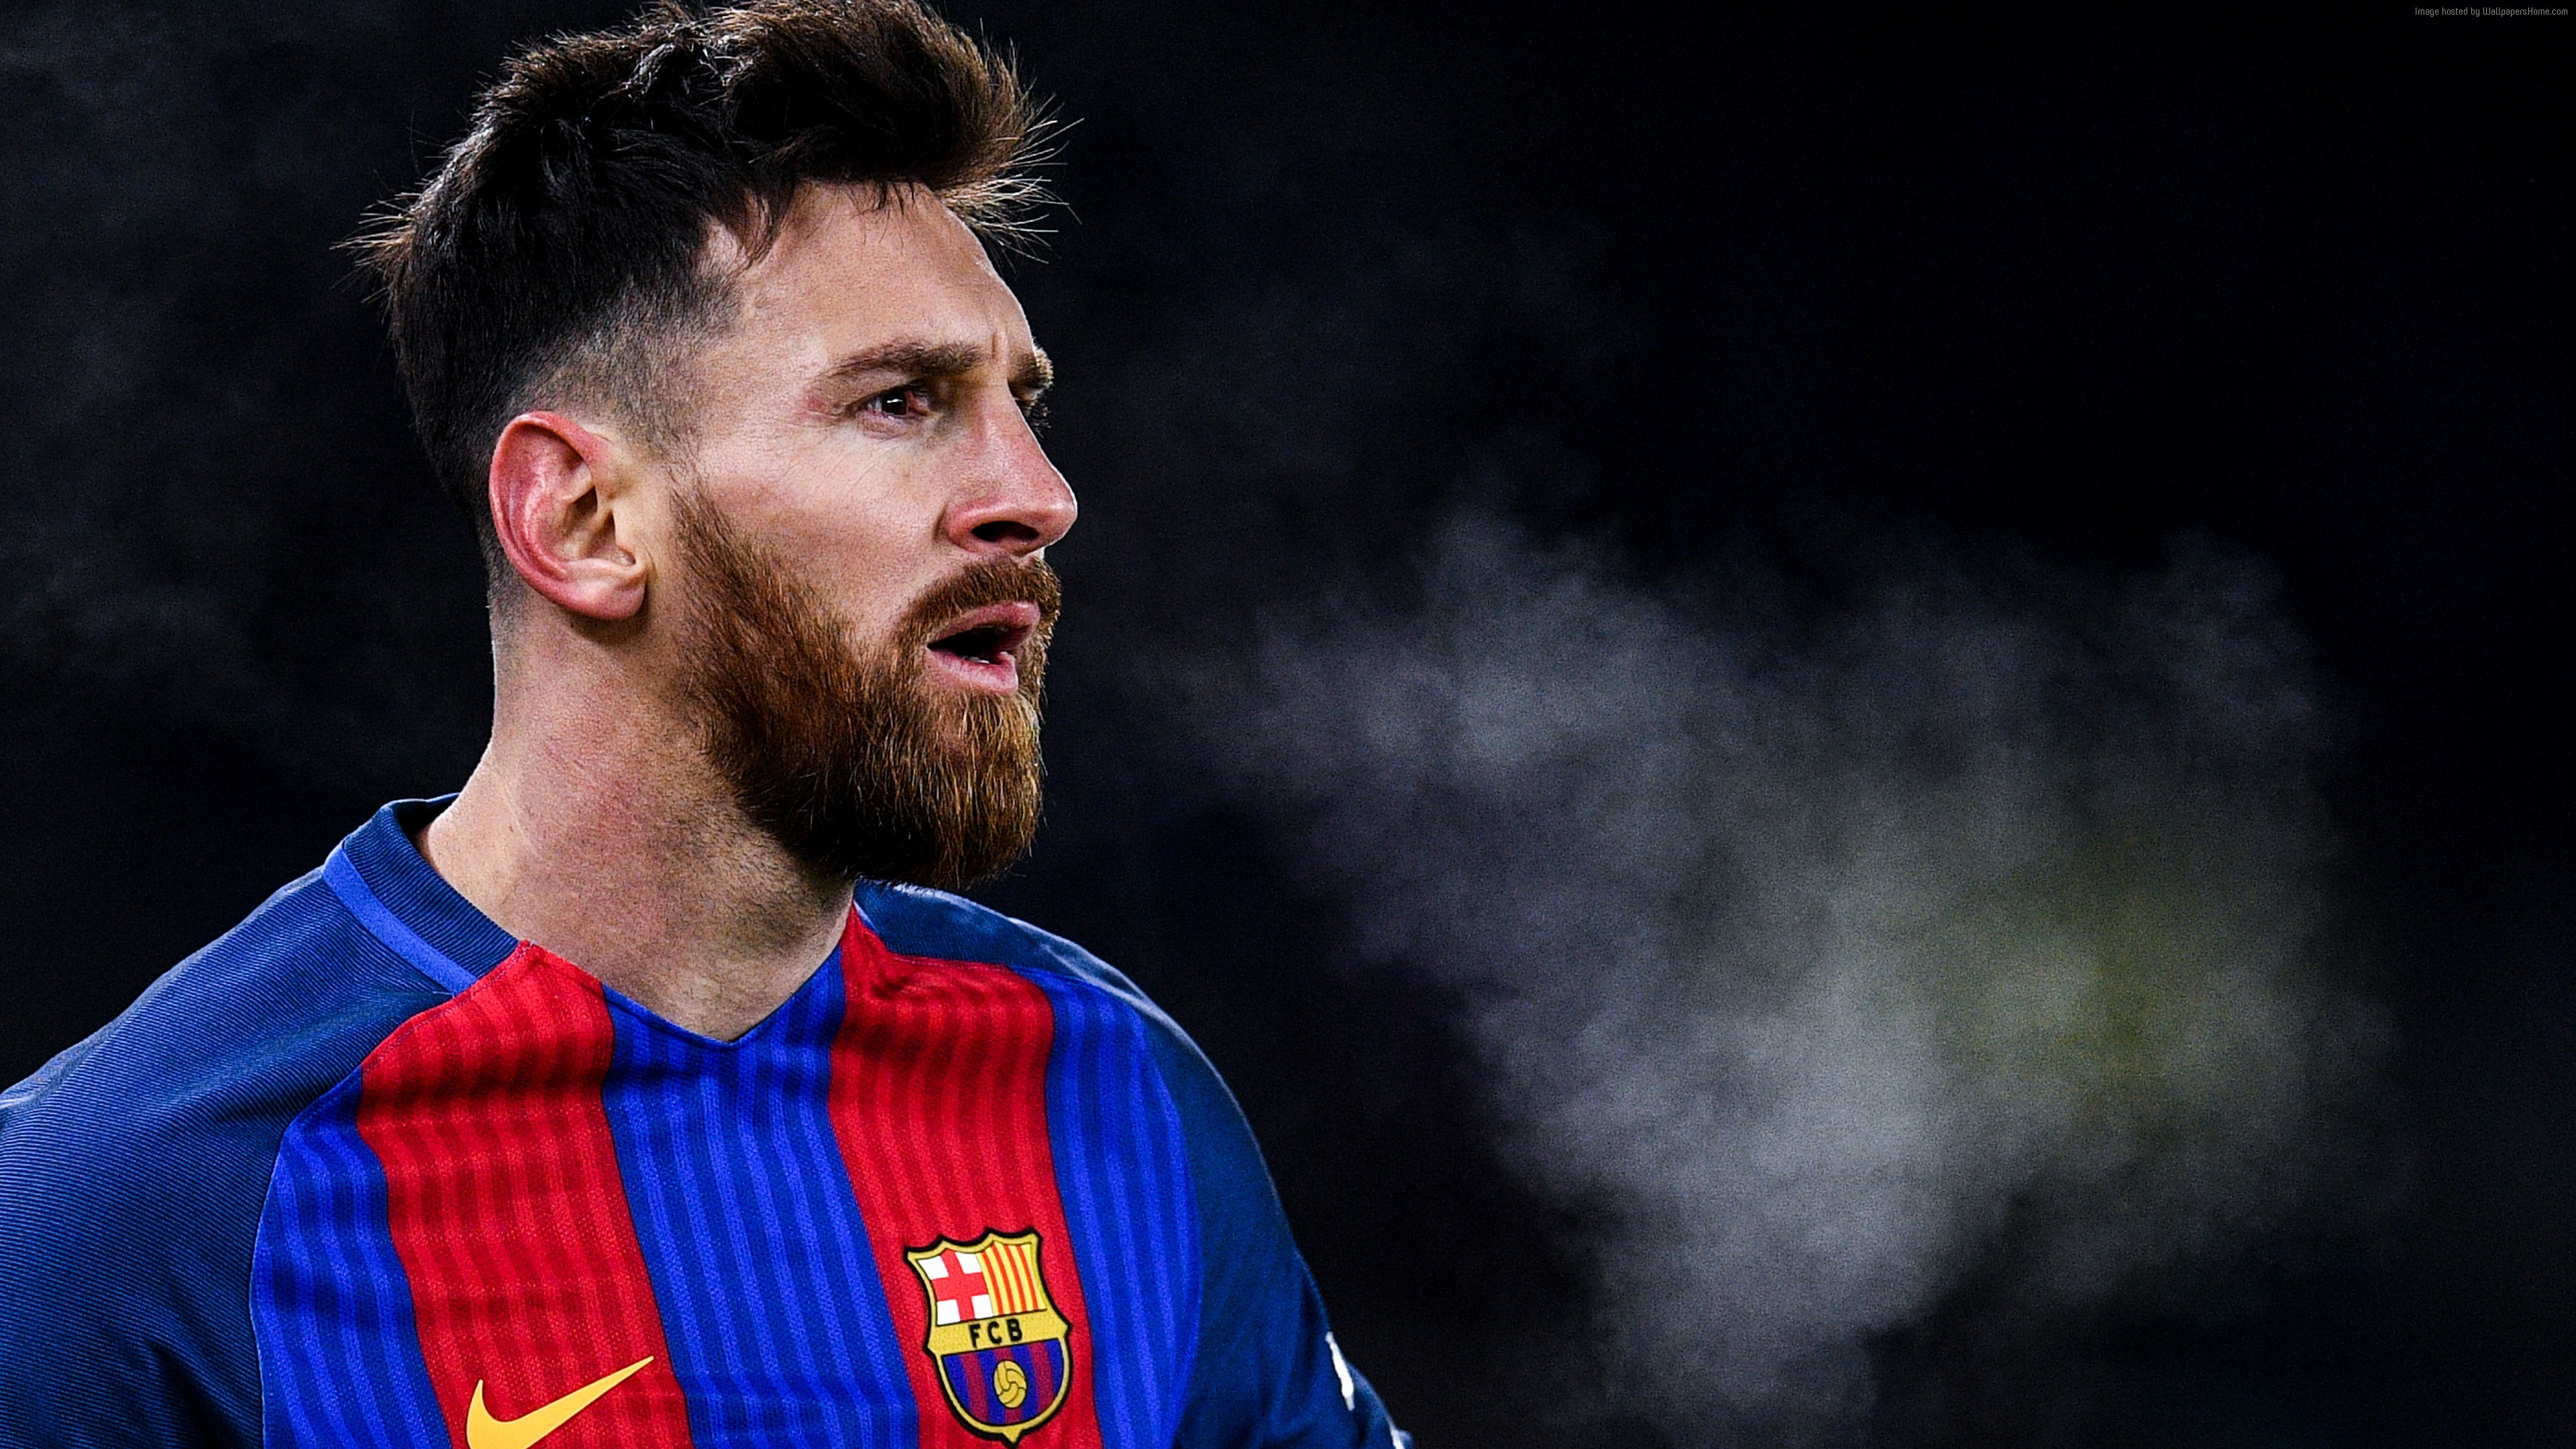 Wallpaper Lionel Messi Soccer Football The Best Lionel Messi Wallpaper 4k 126517 Hd Wallpaper Backgrounds Download